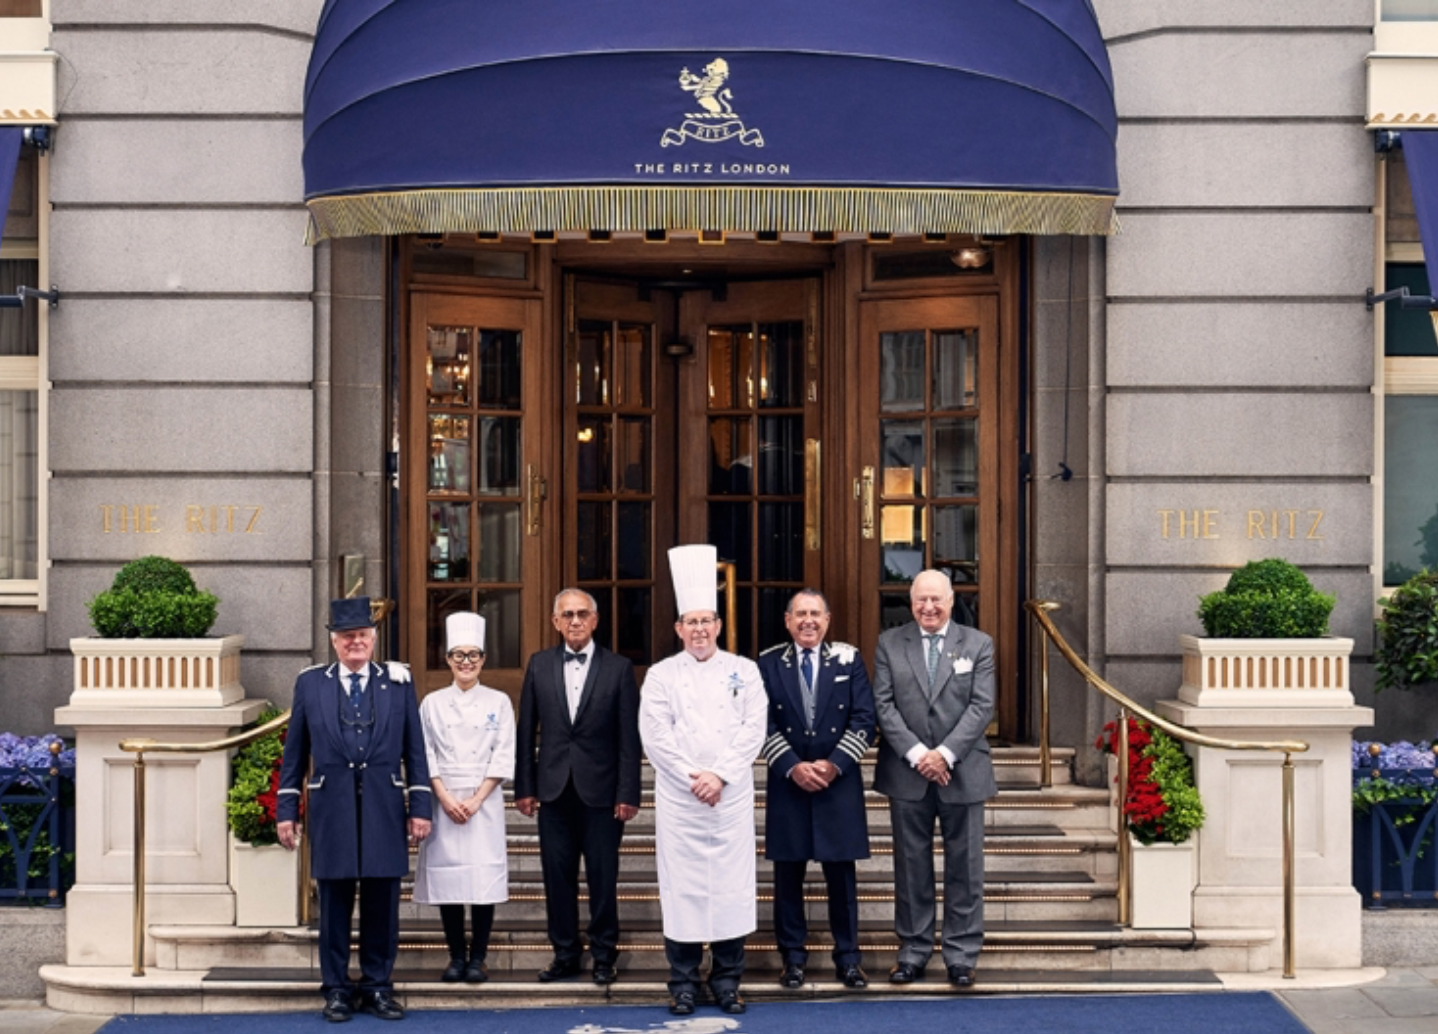 An image of staff stood outside The Ritz hotel, London.